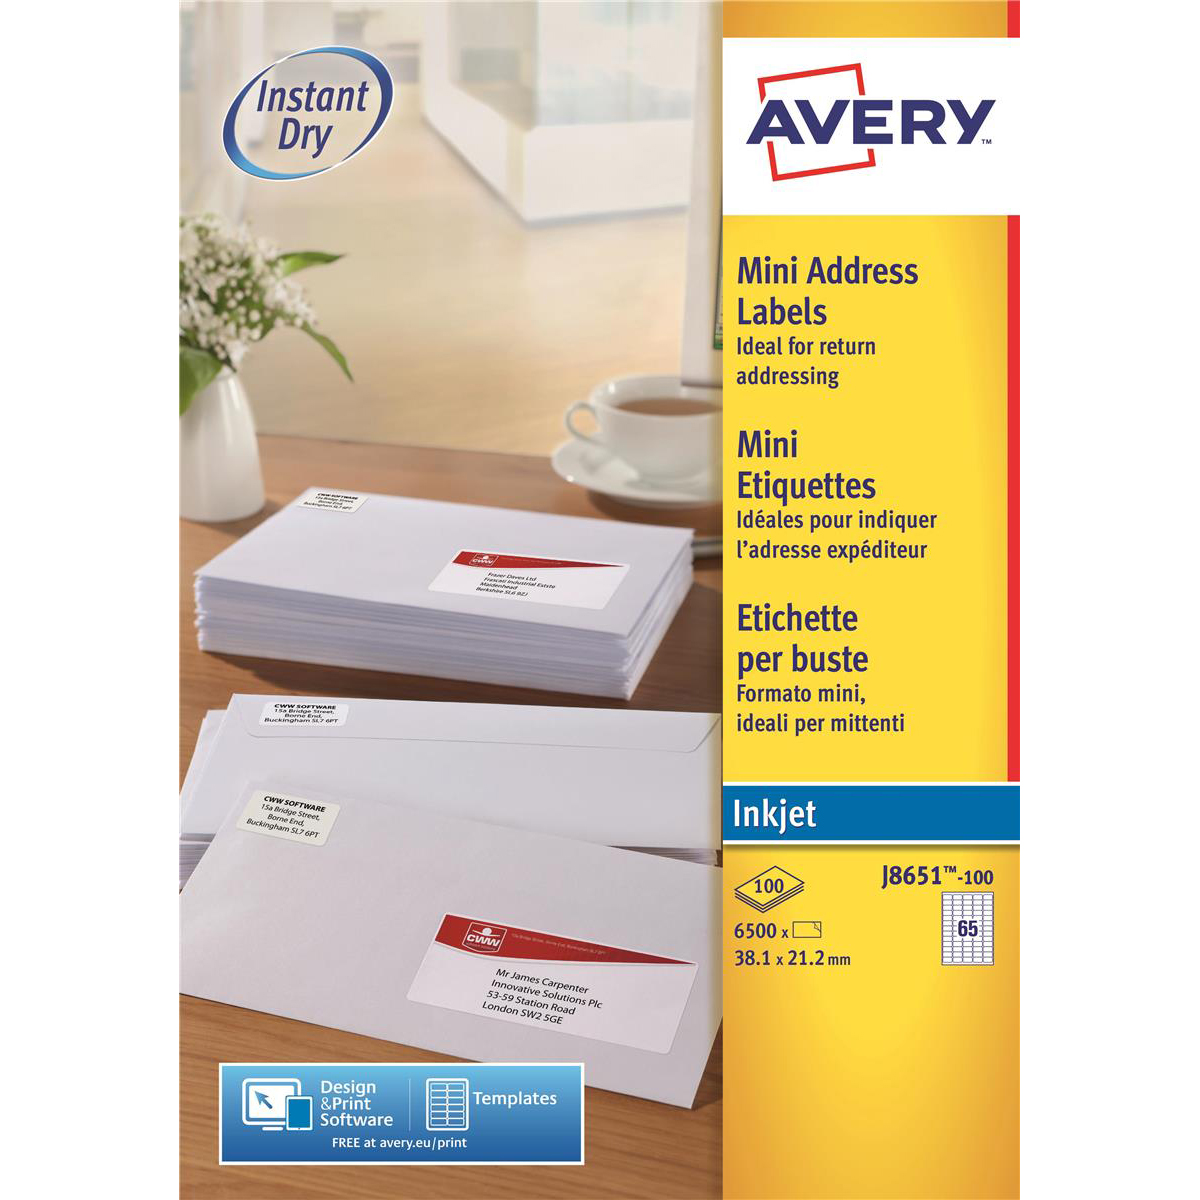 Avery Mini Labels Inkjet 65 per Sheet 38.1x21.2mm White Ref J8651-100 [6500 Labels]